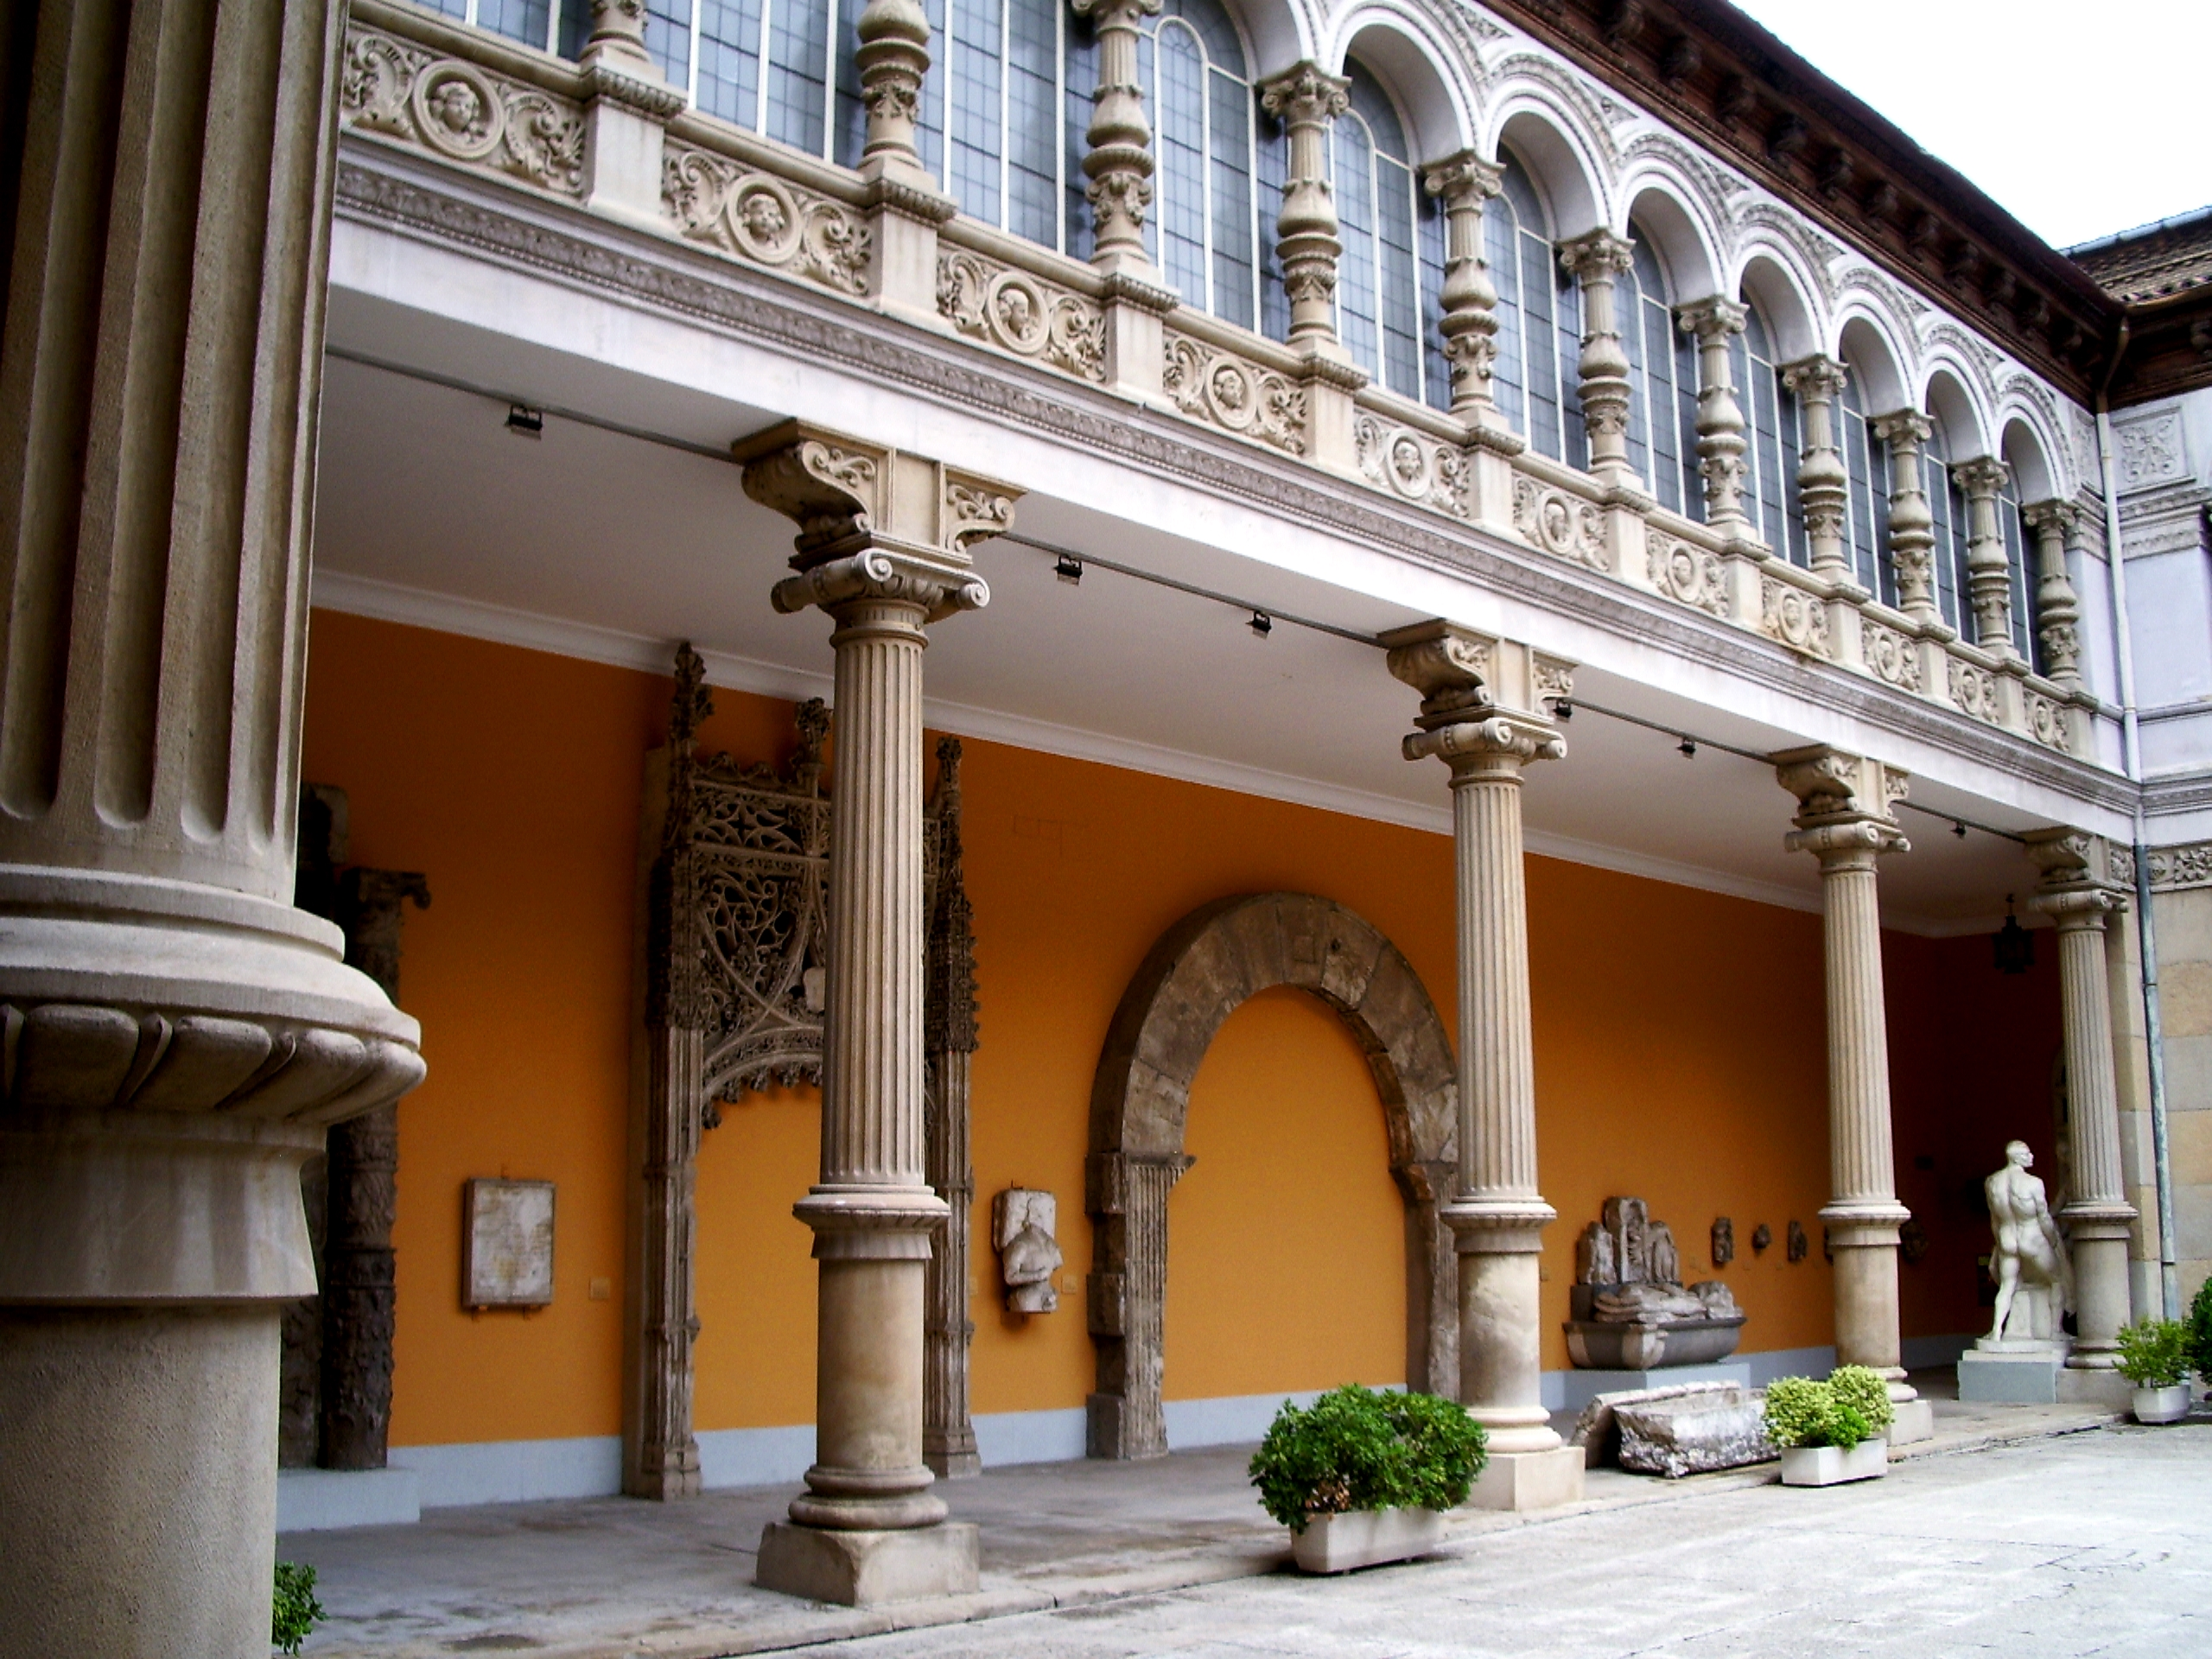 File:Patio del Museo de Zaragoza-1.jpg - Wikimedia Commons